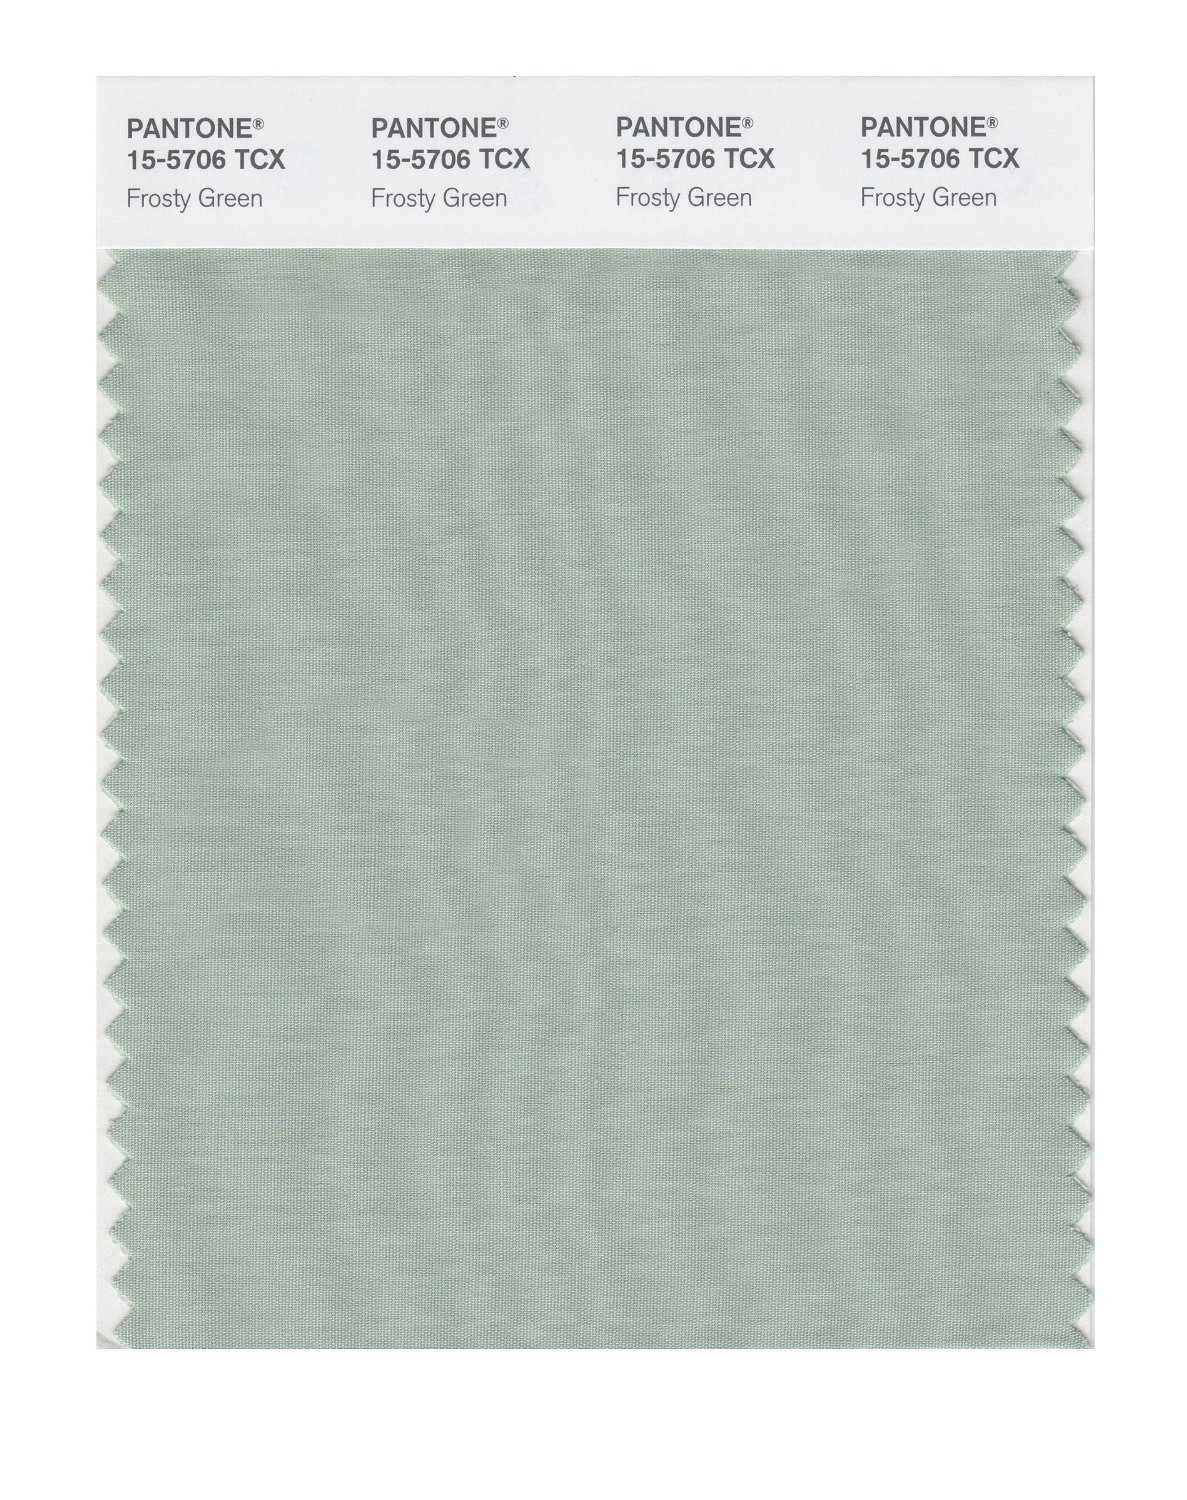 Pantone Smart Swatch 15-5706 Frosty Green